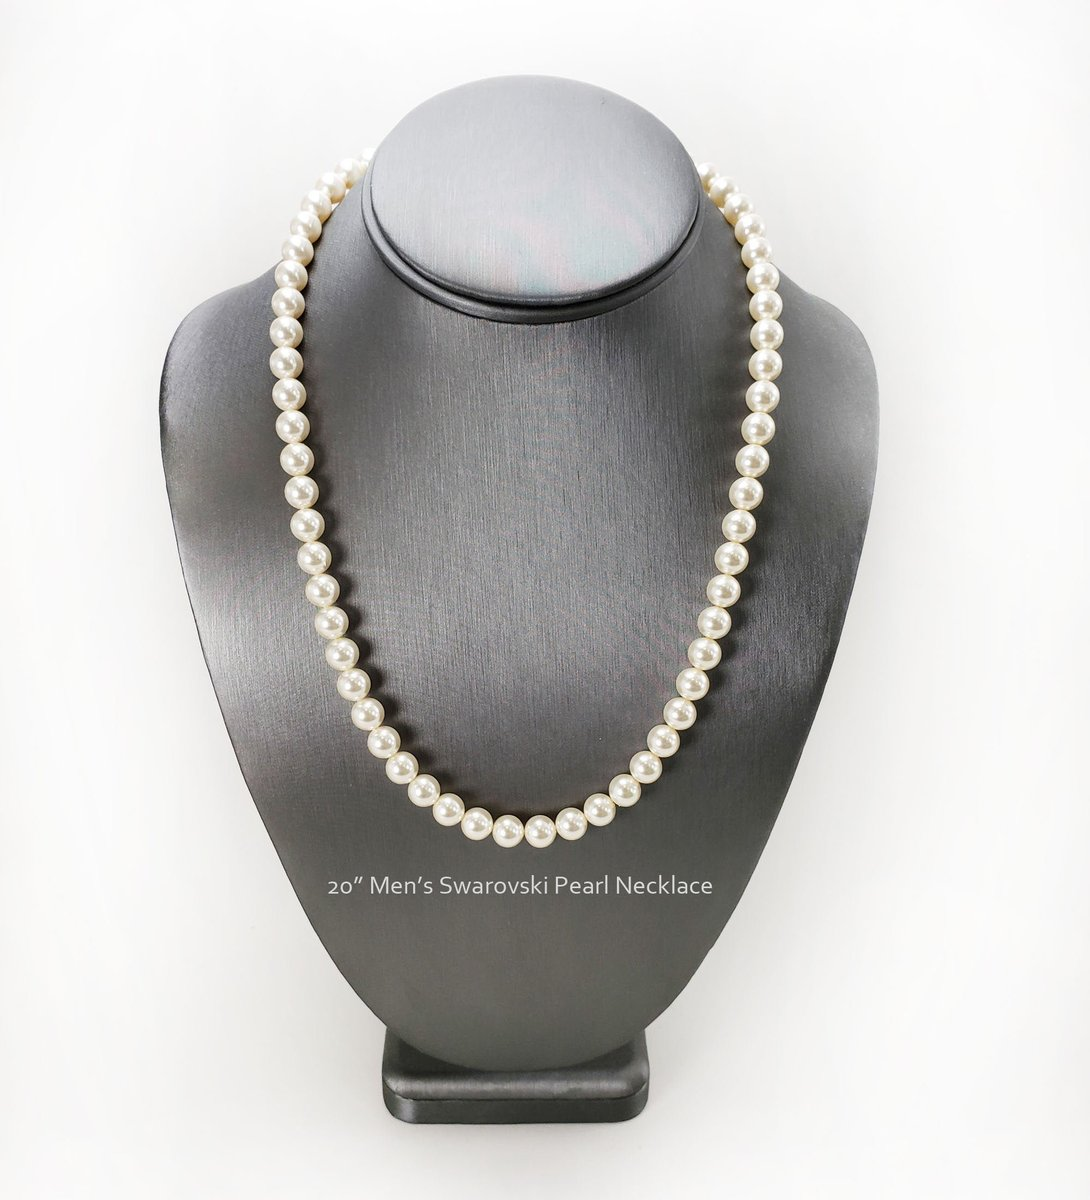 Men's Pearl Necklace Harry Styles Inspired Swarovski Ivory Pearl Necklace For Men 20 Inches Faux Pearl Necklace https://t.co/91Ym281Y4A #etsy #pearlnecklace #giftsforher #handmade #lovejewelry #handmadejewelry https://t.co/op34Tz5Et4